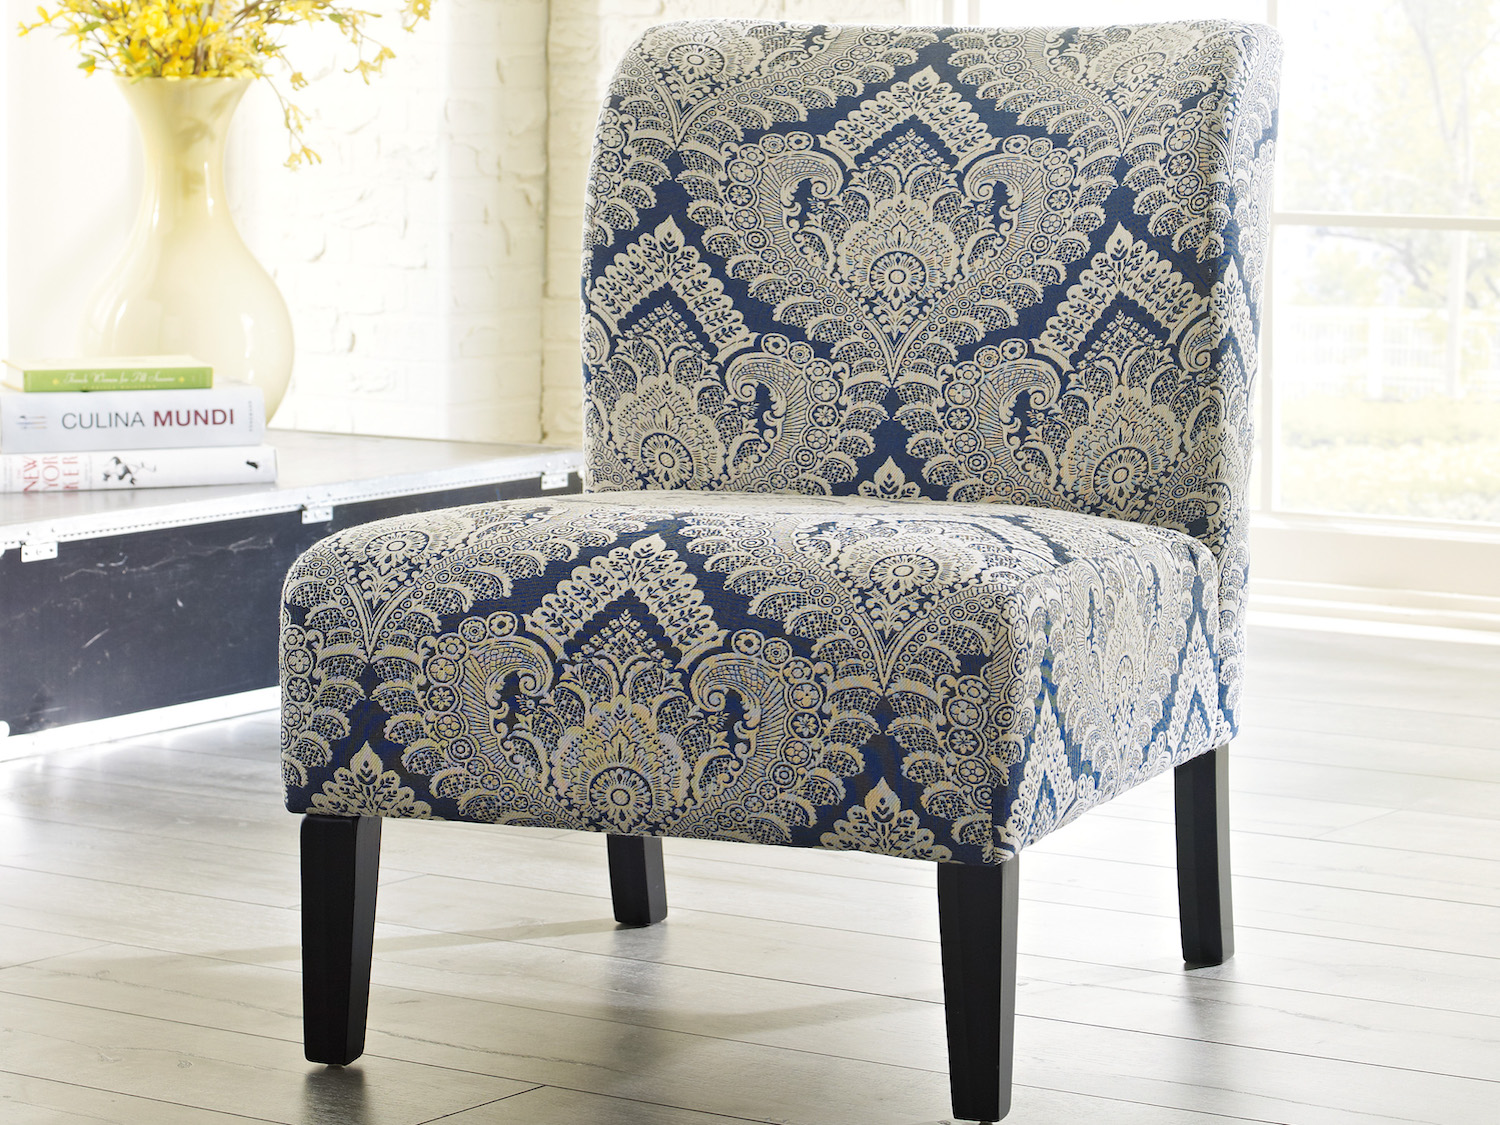 Honnaly   Accent Chair, 53303, Accent Chairs by Midha Furniture to Brampton, Mississauga, Etobicoke, Toronto, Scraborough, Caledon, Oakville, Markham, Ajax, Pickering, Oshawa, Richmondhill, Kitchener, Hamilton and GTA area